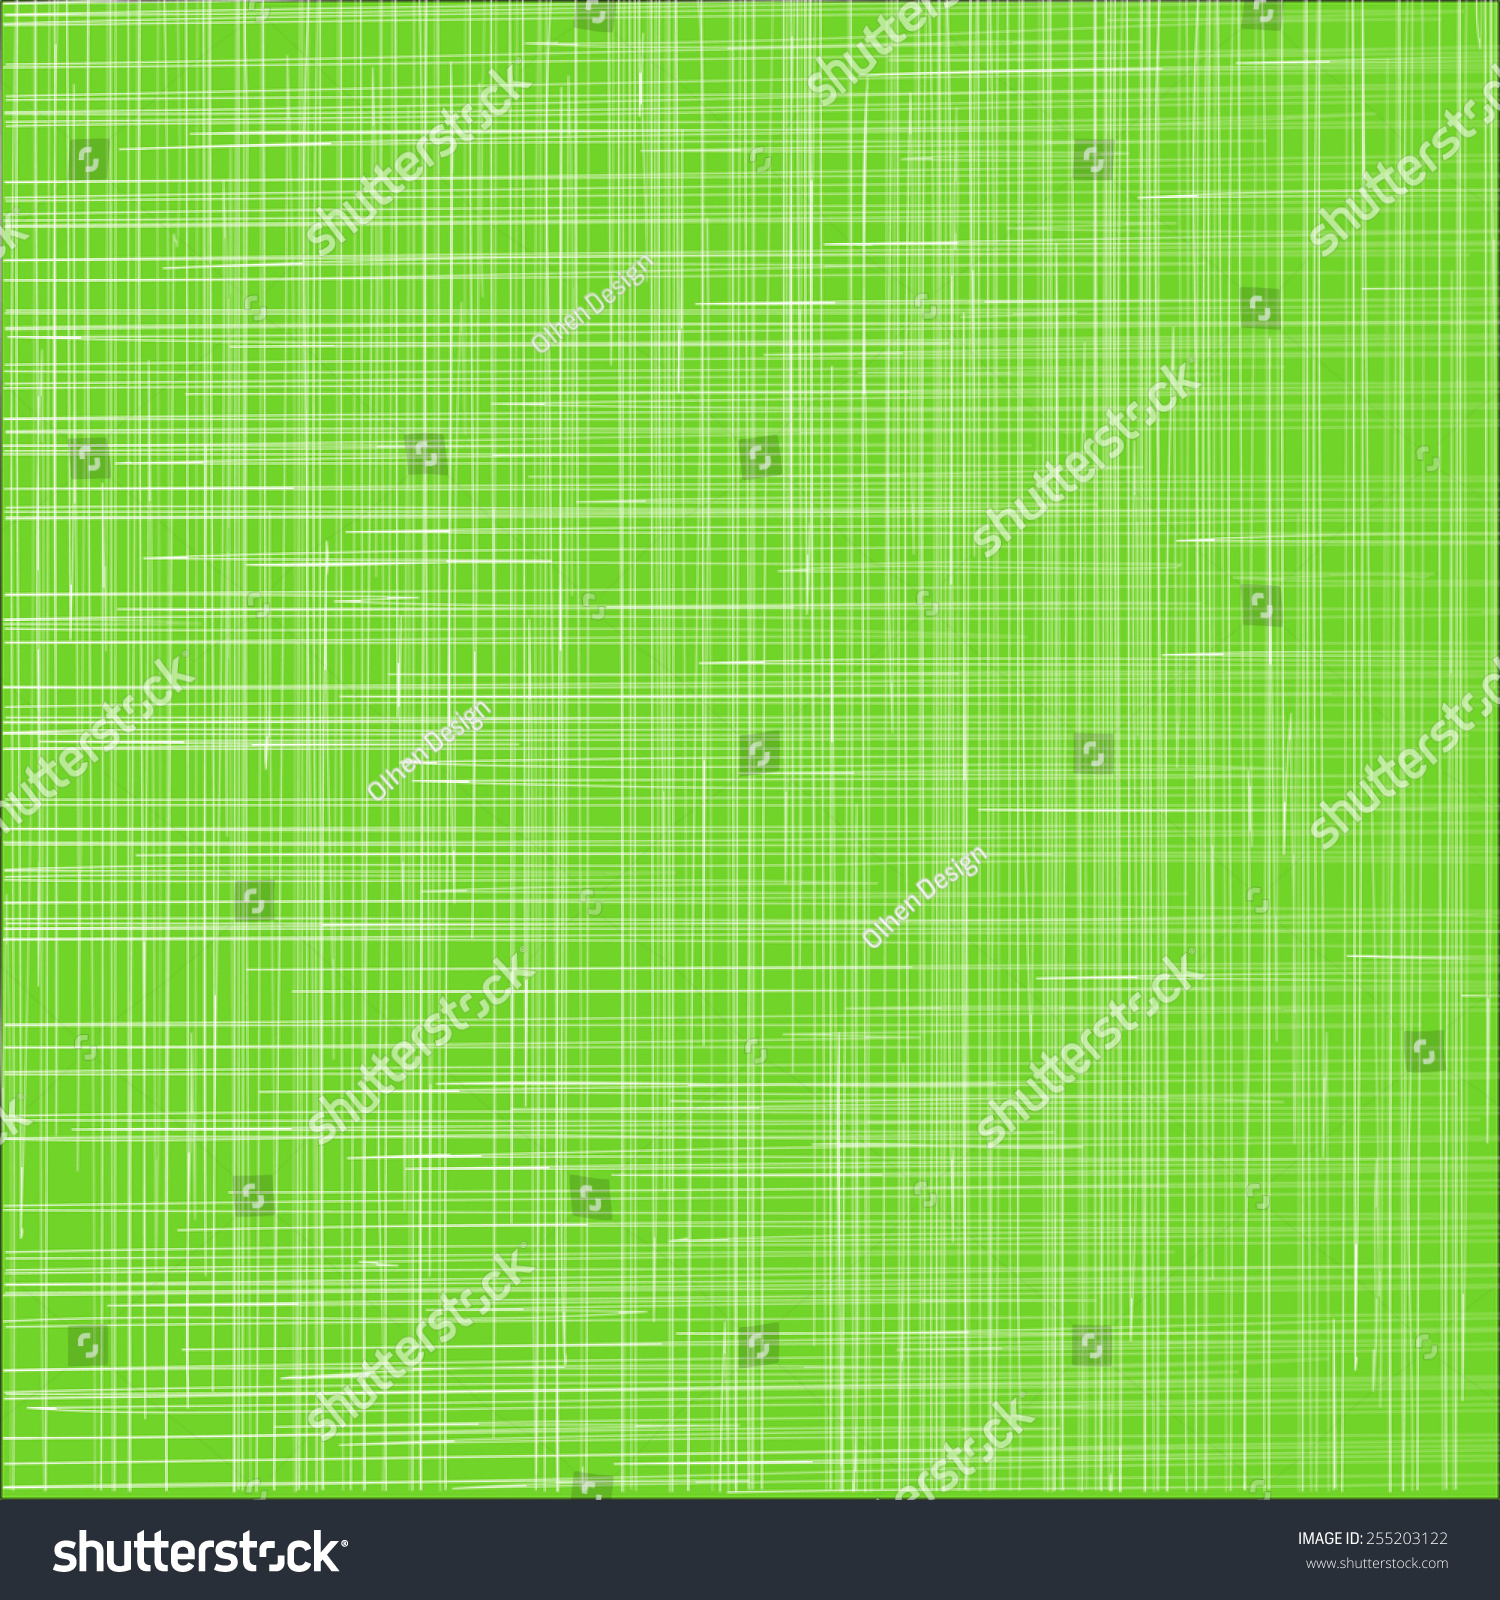 Fabric Book Cover Texture : Green cloth texture background book cover stock vector